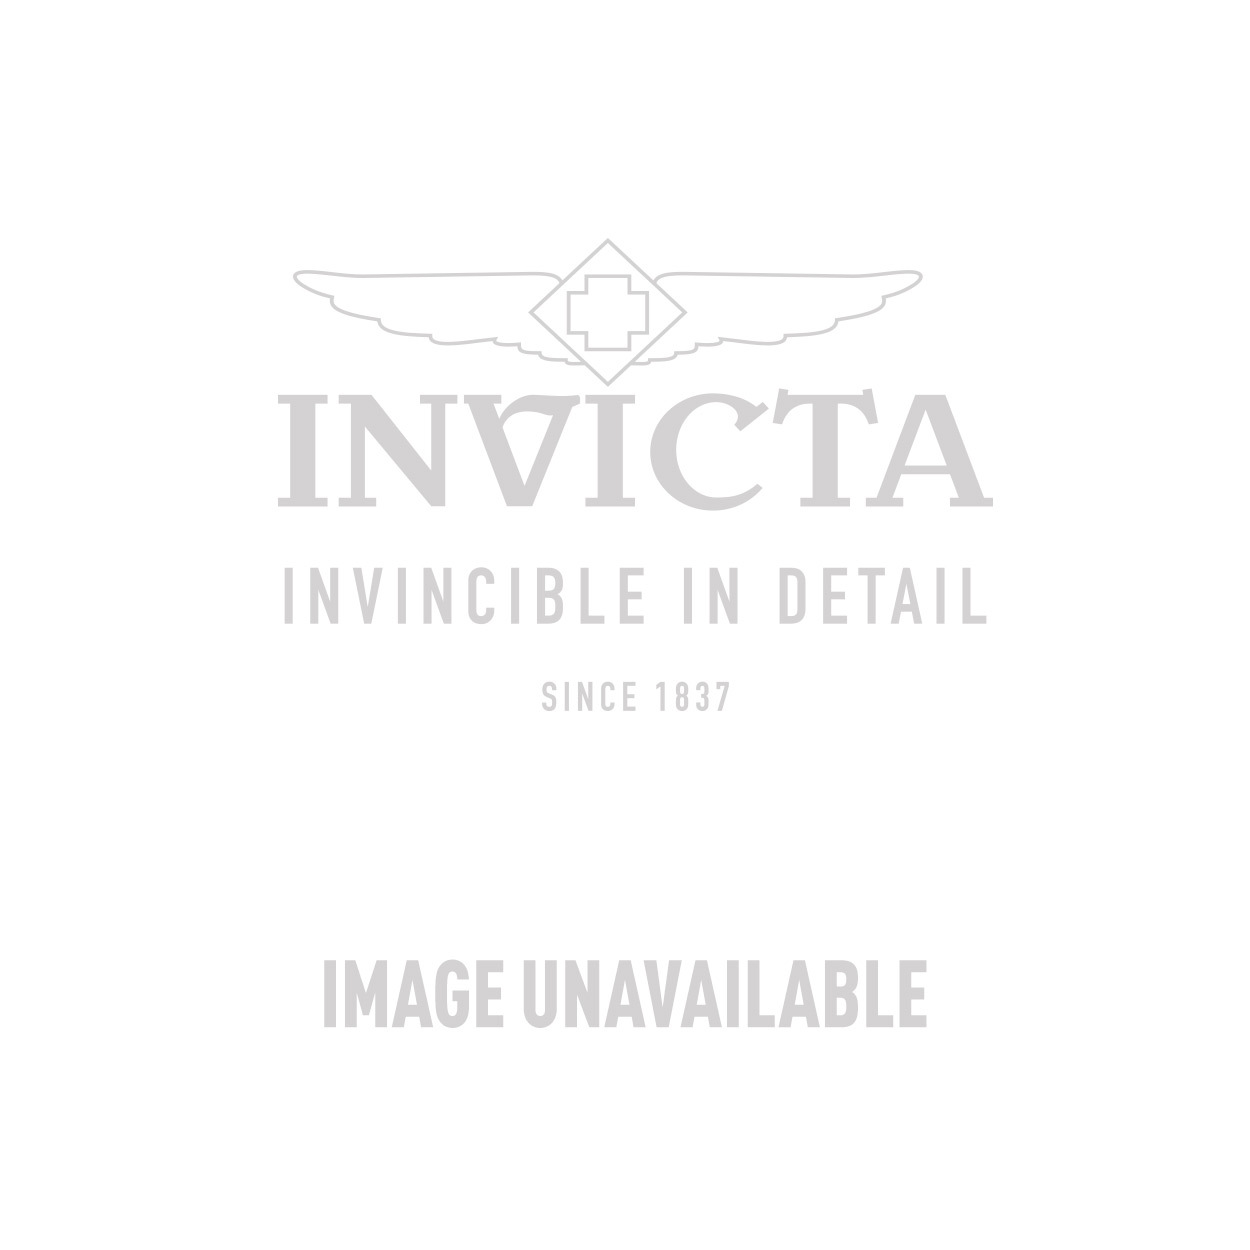 Invicta Reserve Swiss Made Quartz Watch - Stainless Steel case with Grey tone Silicone band - Model 90085